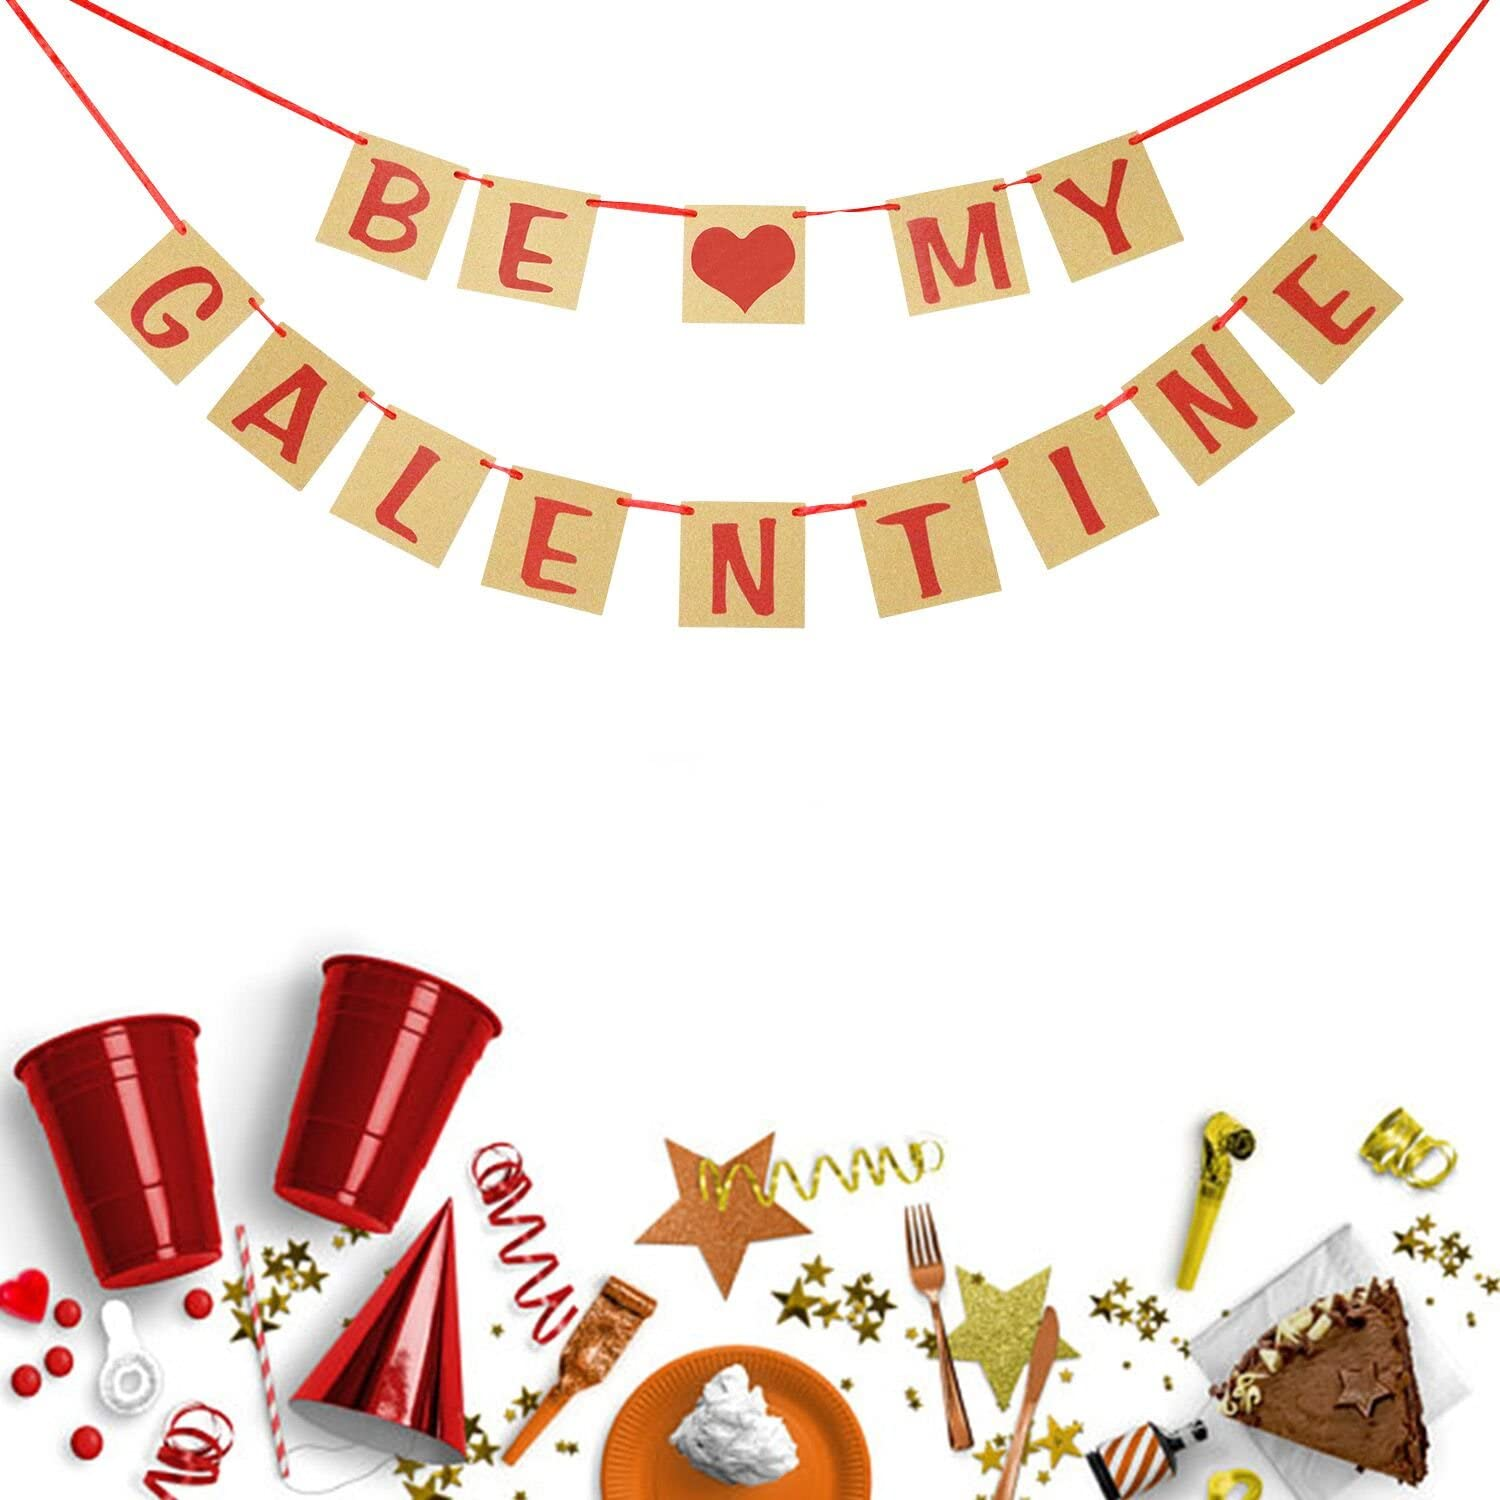 Valentines Day Decorations Be My Galentine Banner Bunting Garland Valentine Photo Prop Galentines Day Party Favors Ladies Celebrating Decor Amazon Co Uk Toys Games